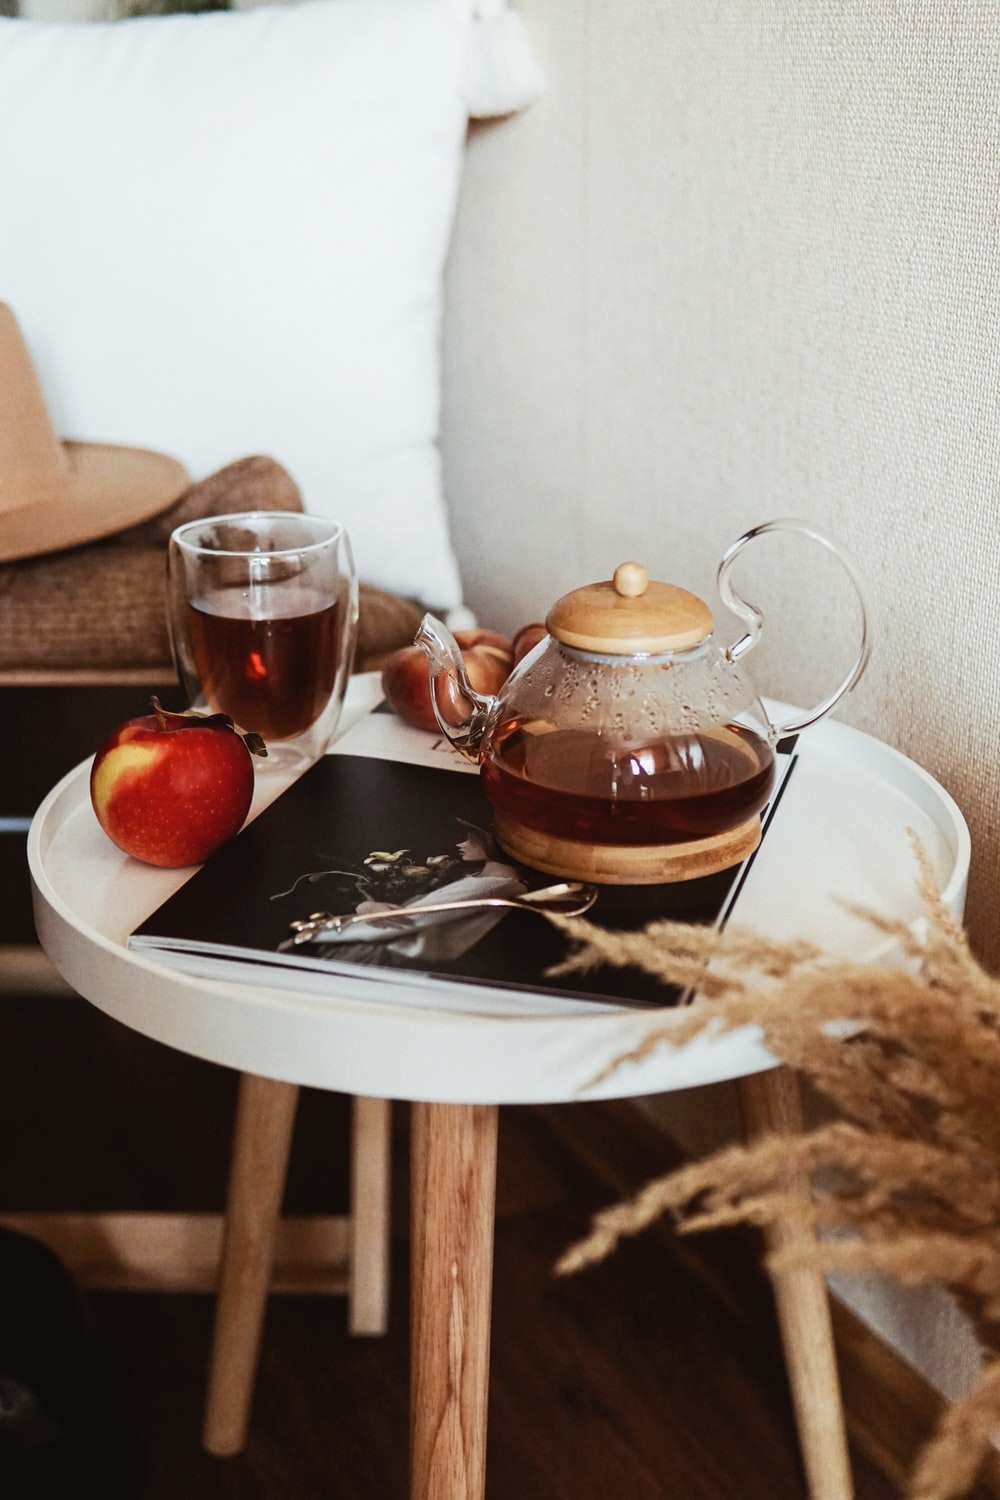 teapot near gray stainless steel teaspoon, red apple fruit, and clear glass mug on round white wooden end table